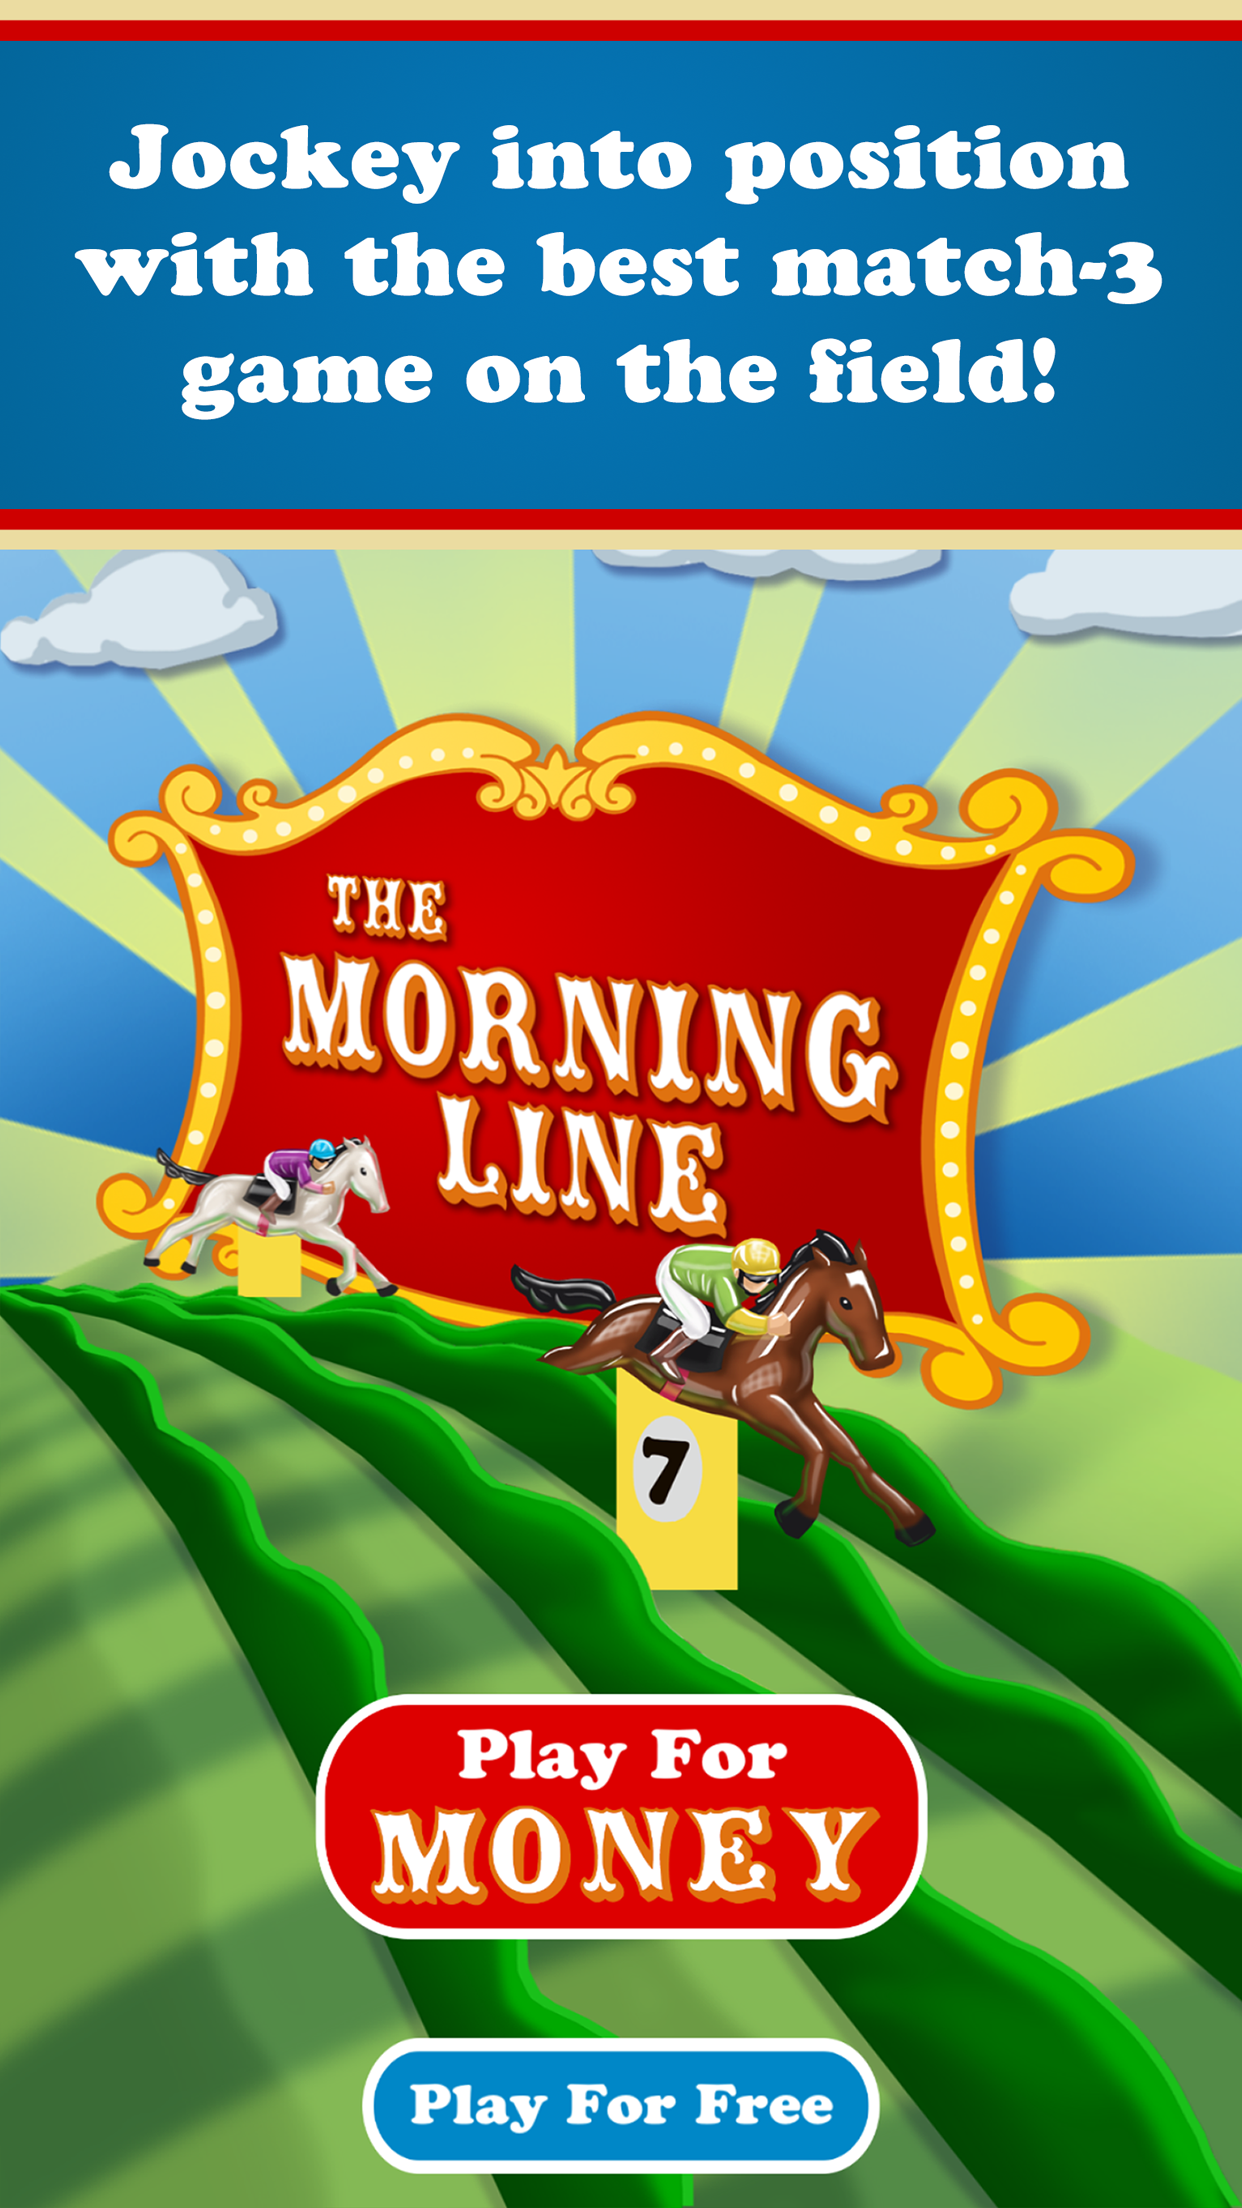 The Morning Line